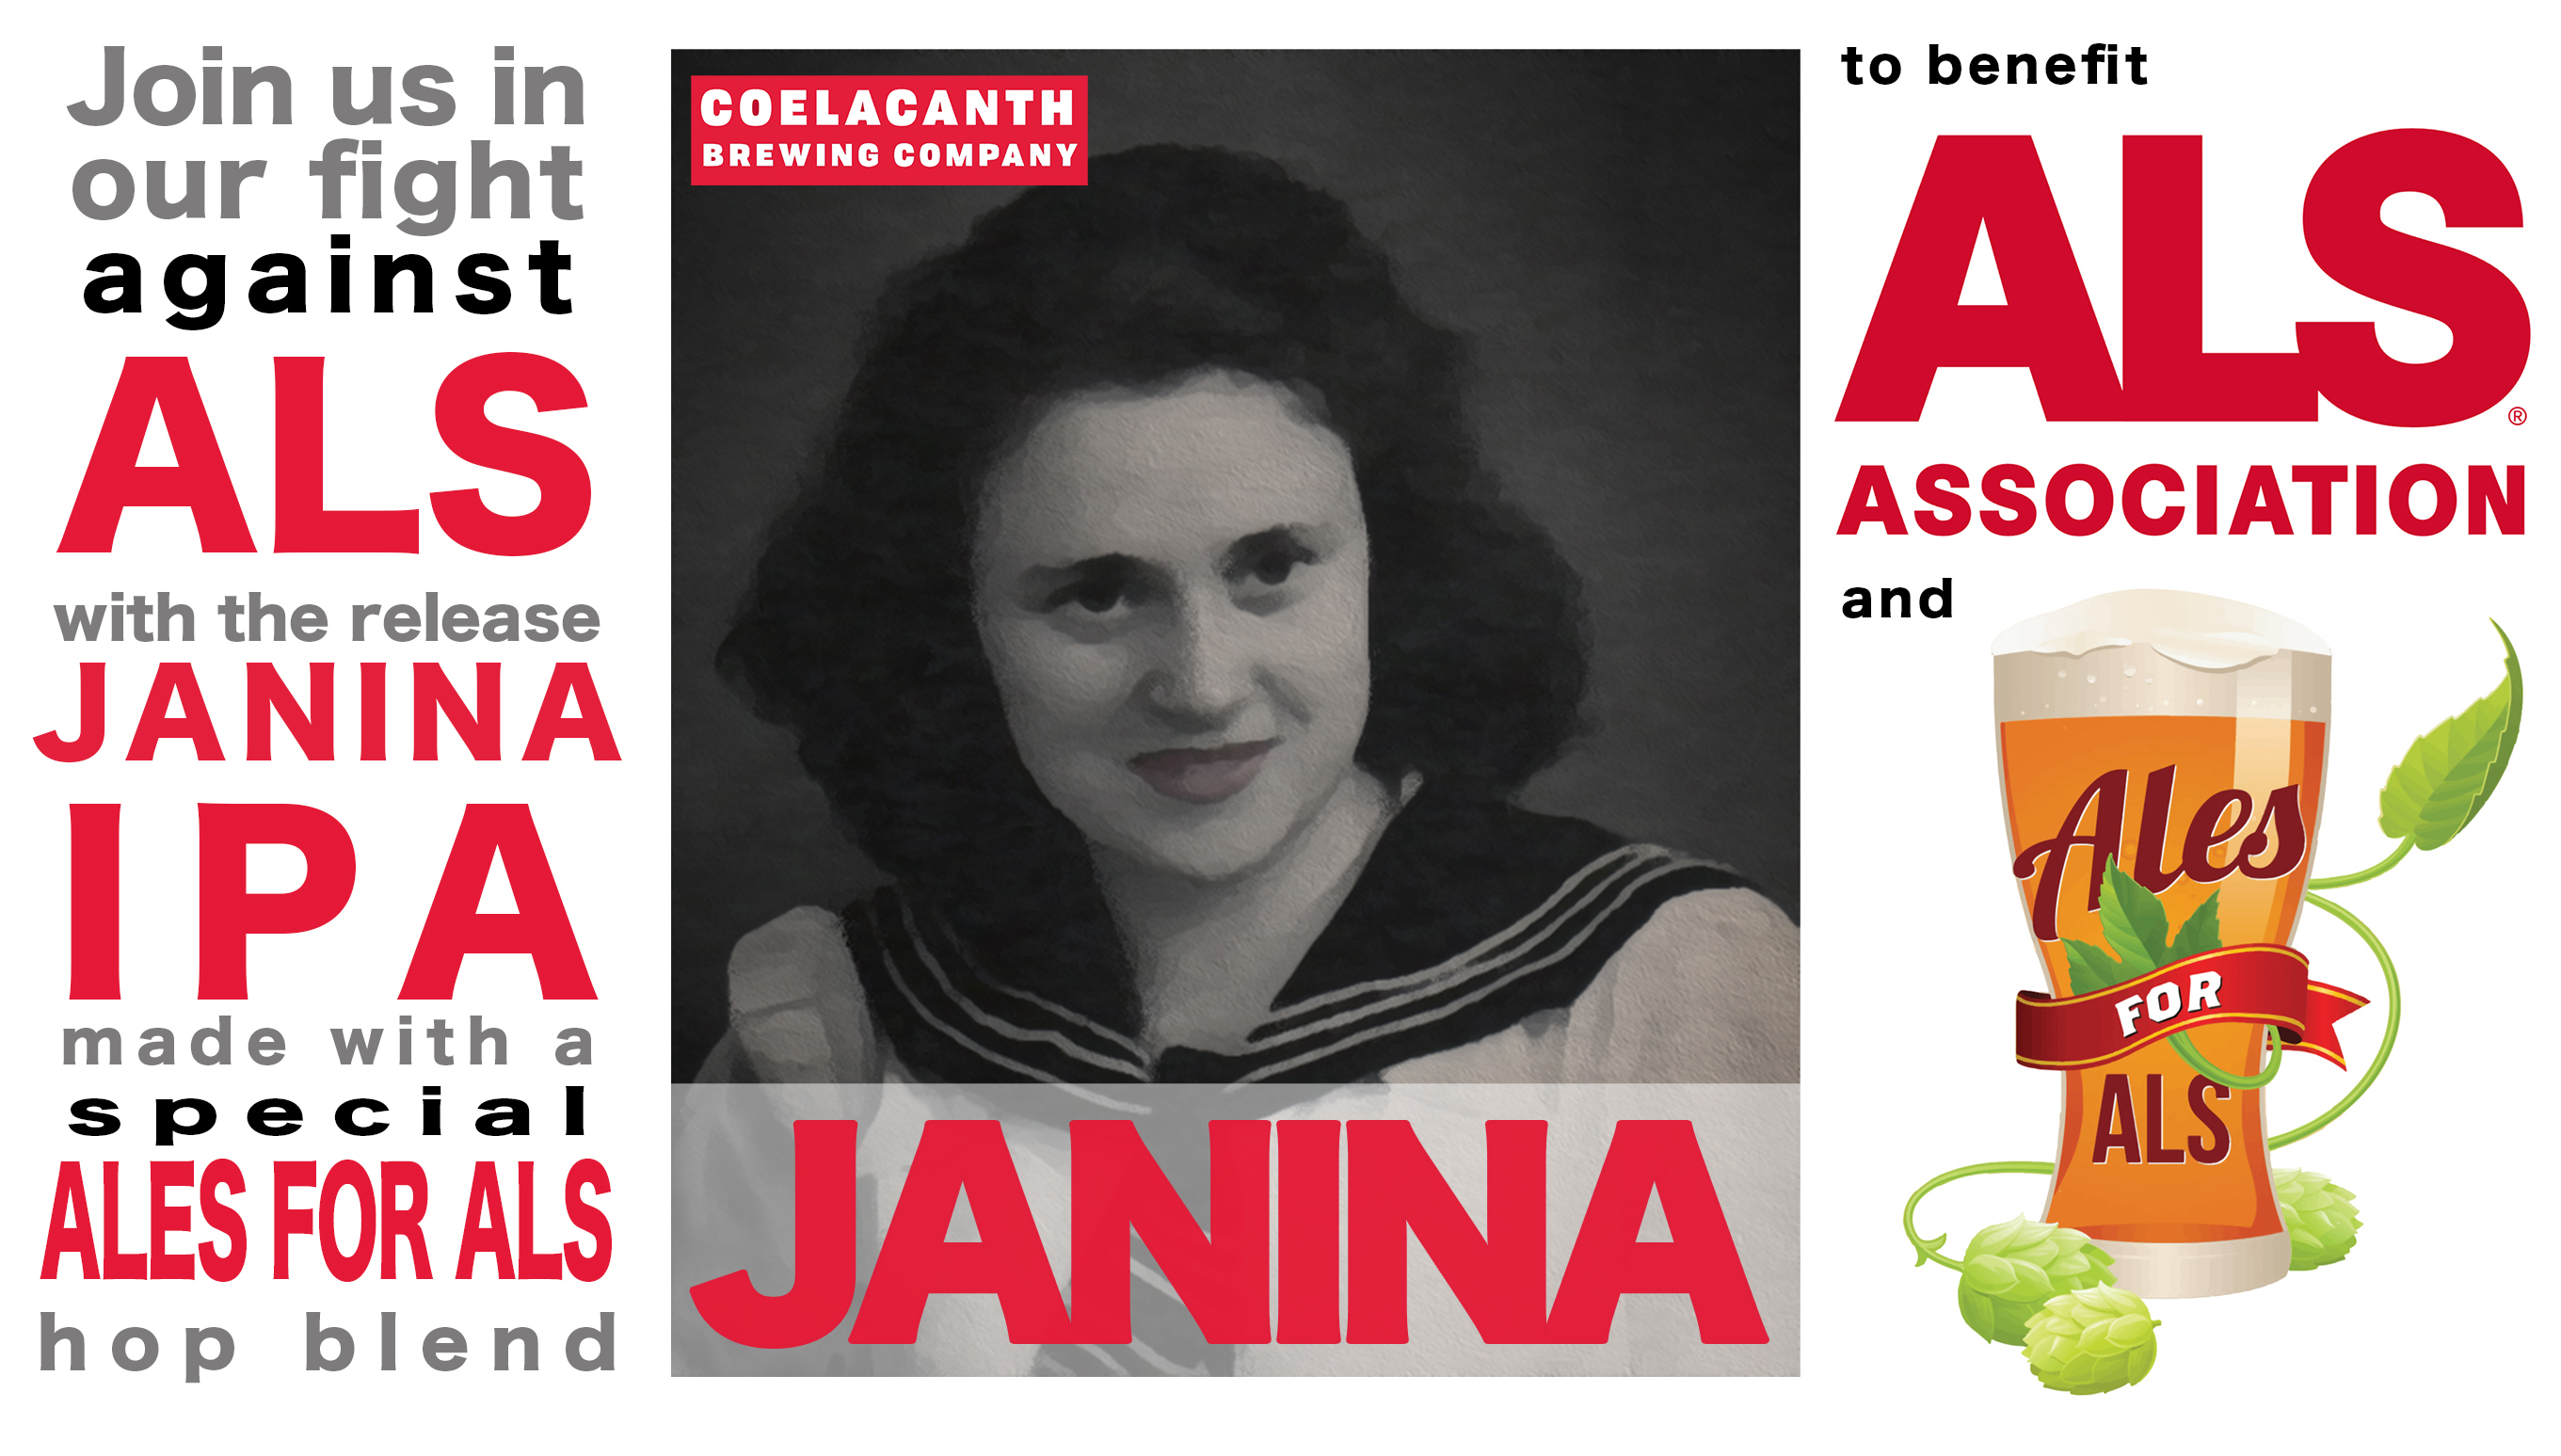 Coelacanth Brewing Partners with Ales for ALS to Release JANINA